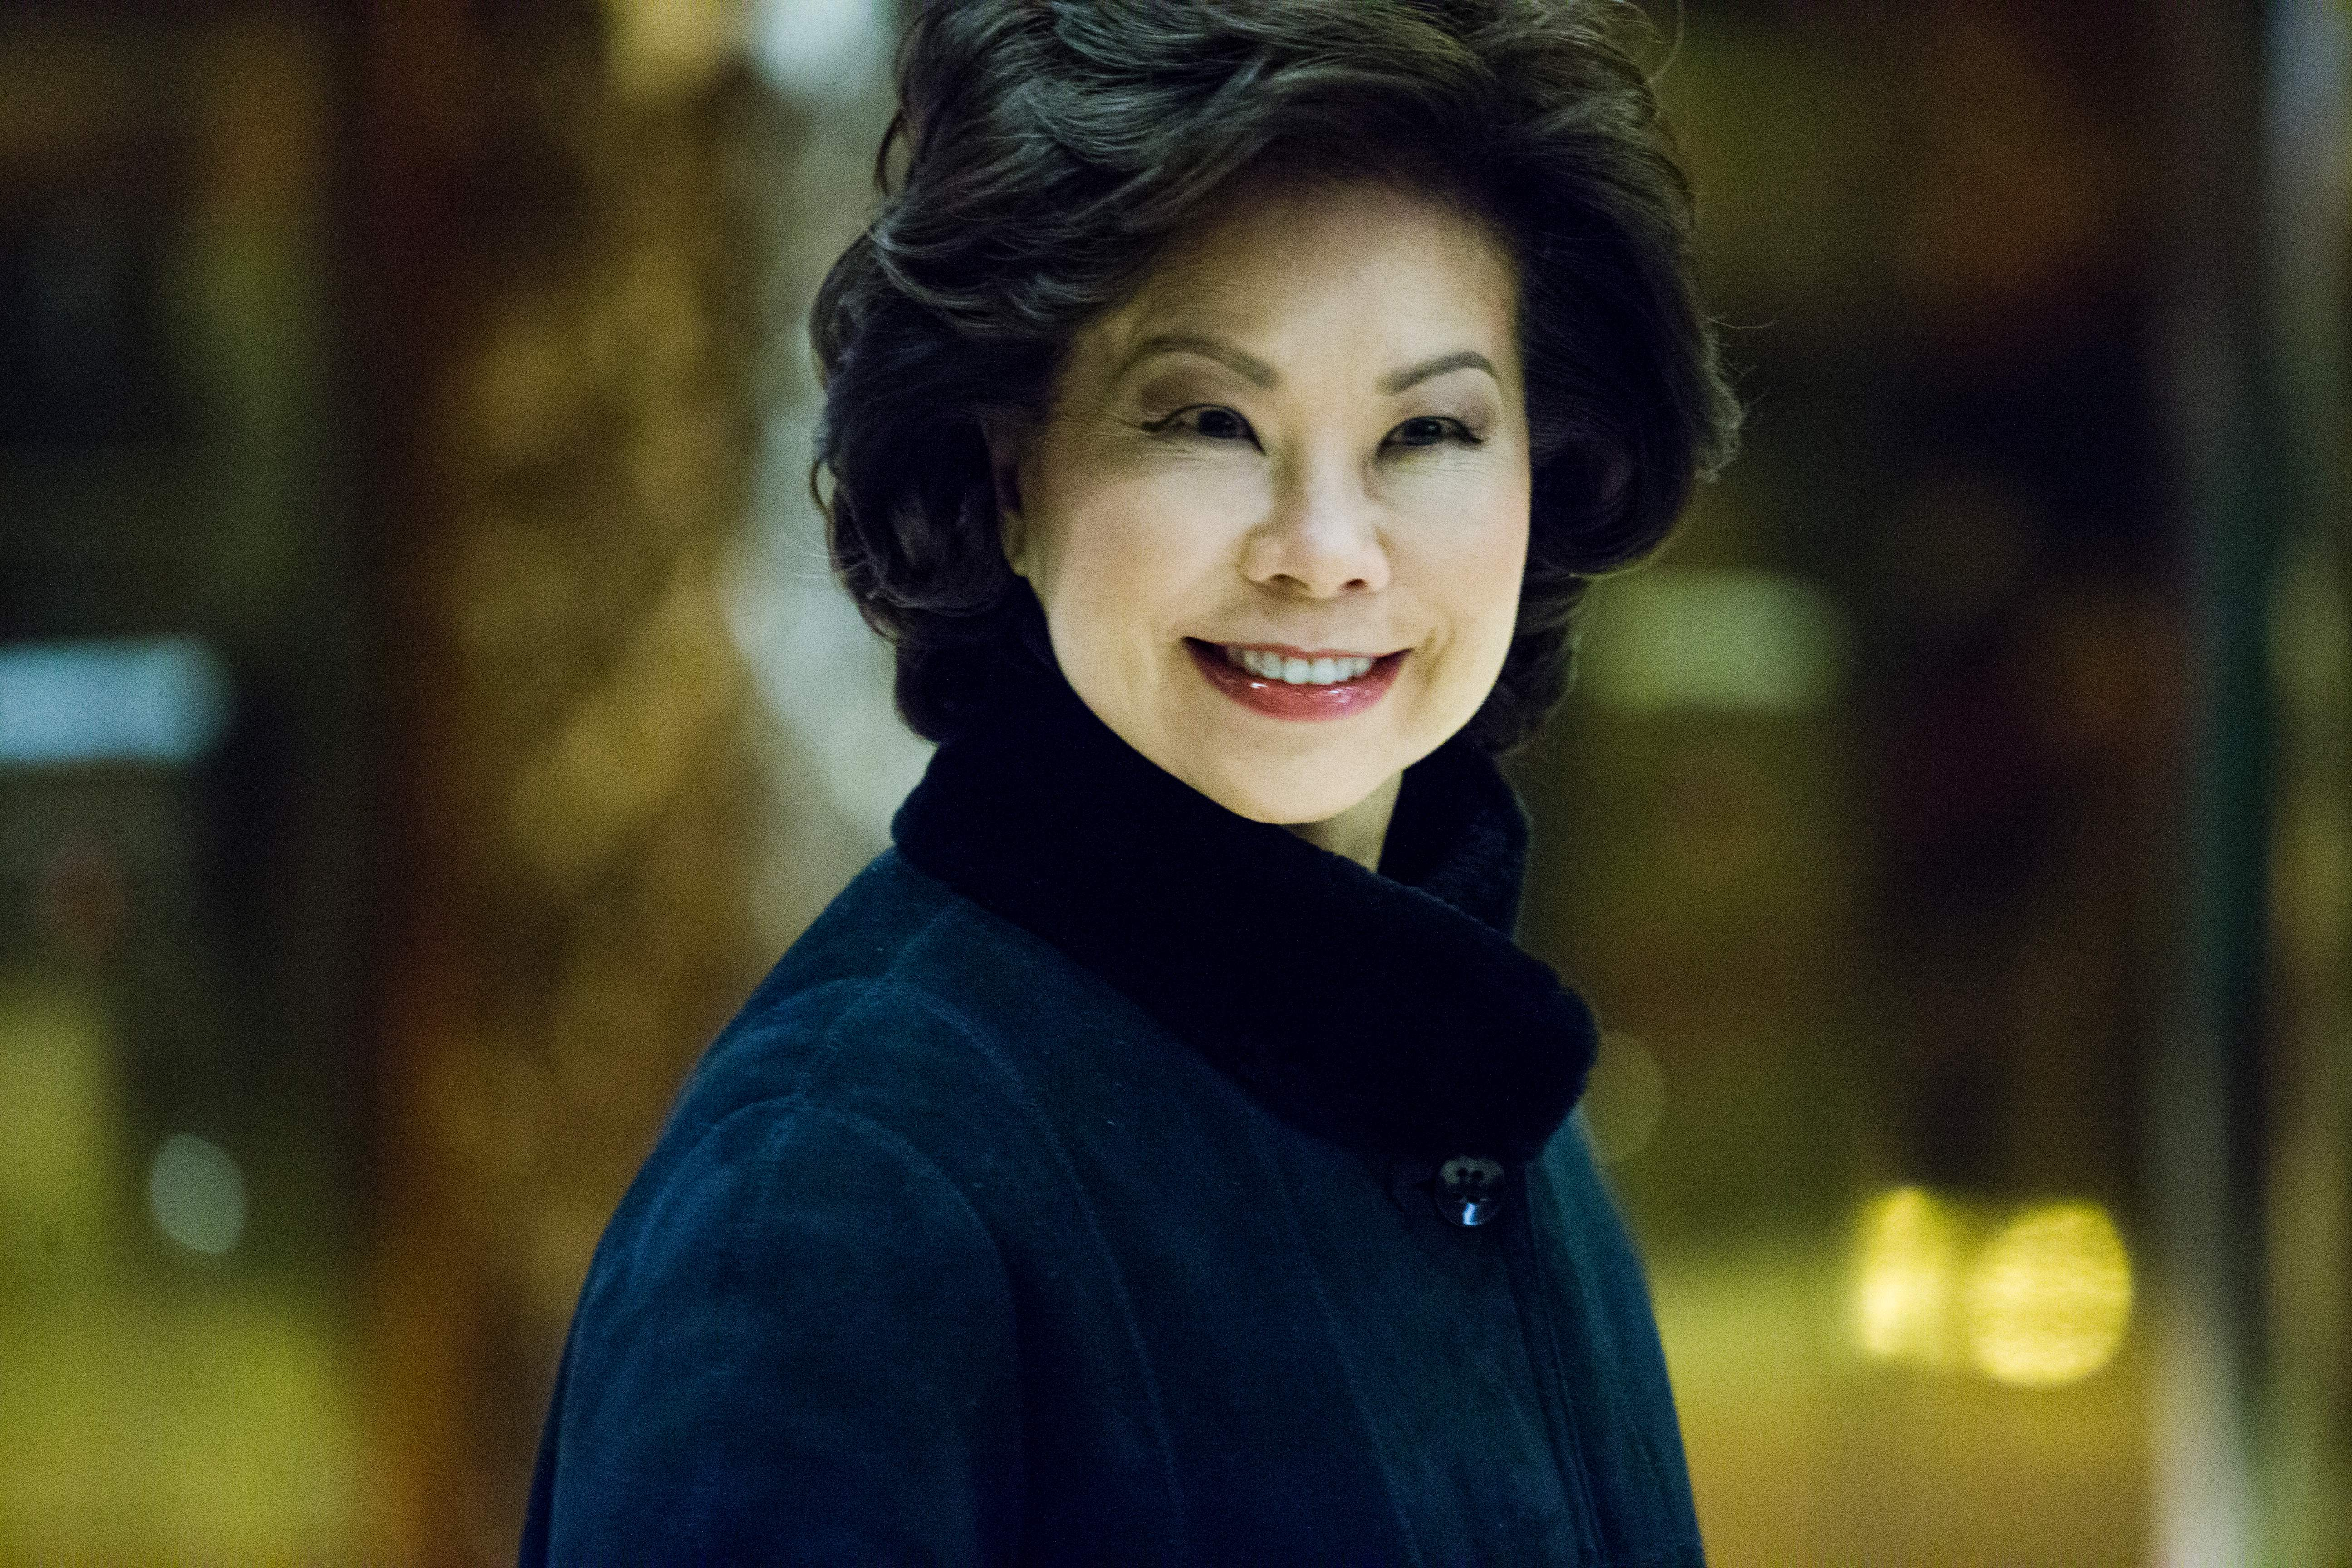 Former US Secretary of Labor Elaine Chao arrives at Trump Tower on November 21, 2016 in New York.